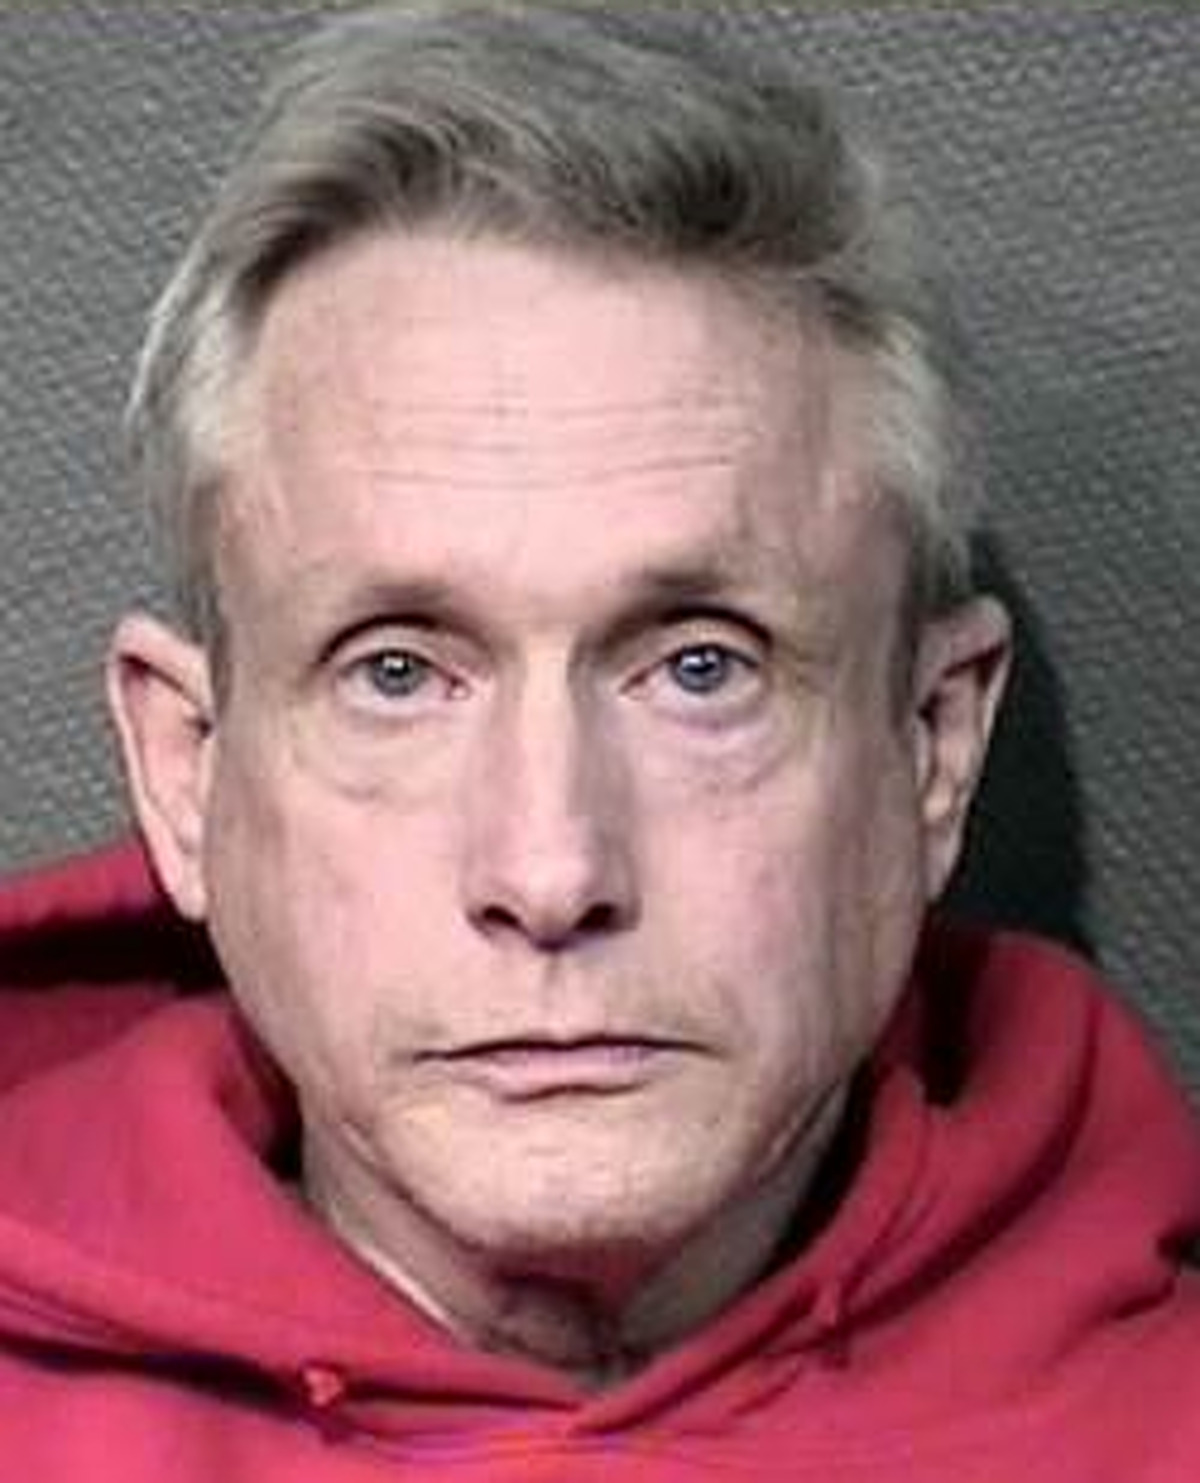 Robin Chiswell, 60, was arrested in November on a felony stalking charge, accused of sending a woman several threatening messages and following her for at least nine months in 2018, court records show.